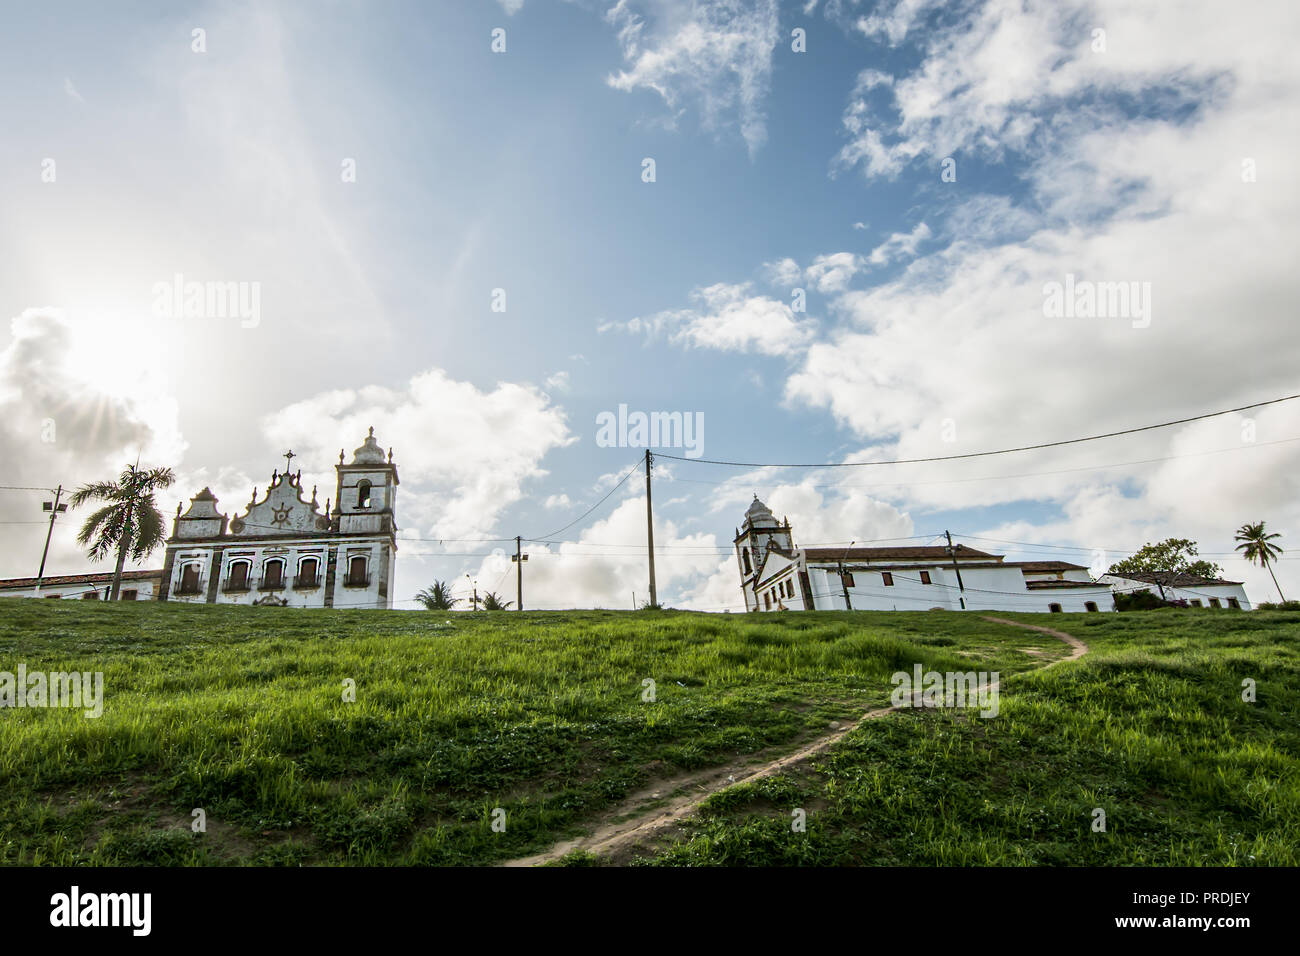 The Church of Saints Cosme and Damião (1535) and the Ensemble of the Sacred Heart of Jesus, Igarassu, Pernambuco, Brazil - Stock Image